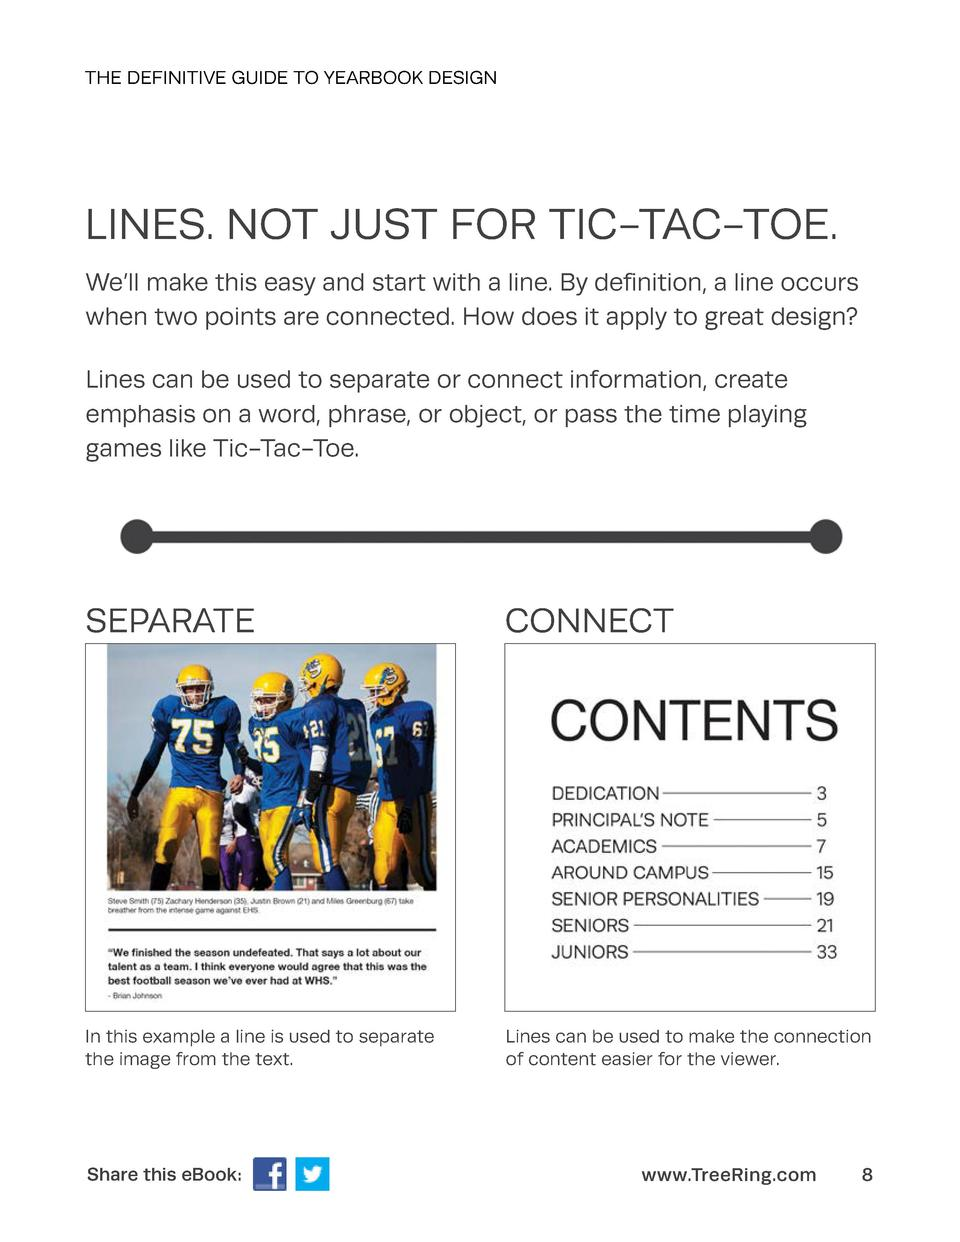 THE DEFINITIVE GUIDE TO YEARBOOK DESIGN  LINES. NOT JUST FOR TIC-TAC-TOE. We   ll make this easy and start with a line. By...